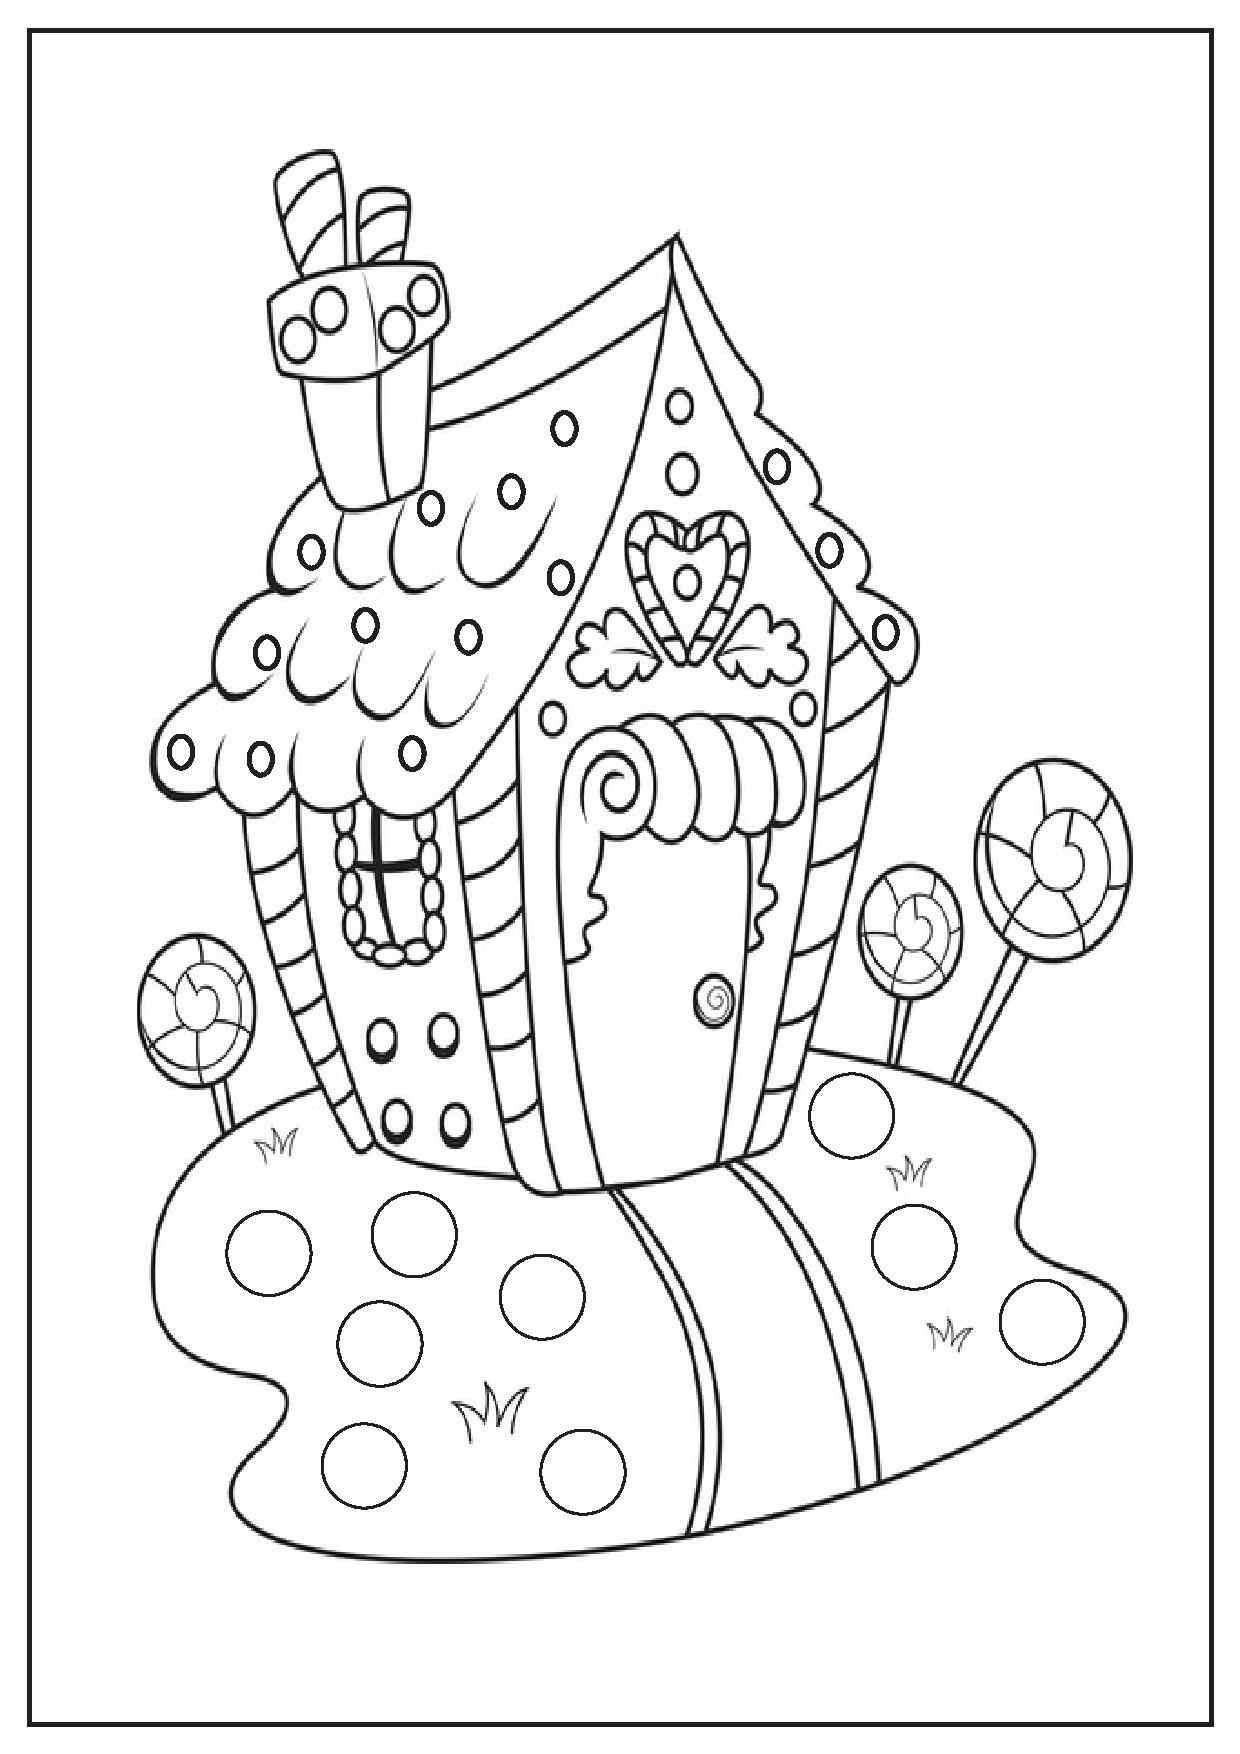 Coloring Pages Christmas Coloring Pages For Kindergarten 1000 images about christmas templates on pinterest holiday activities coloring and navidad